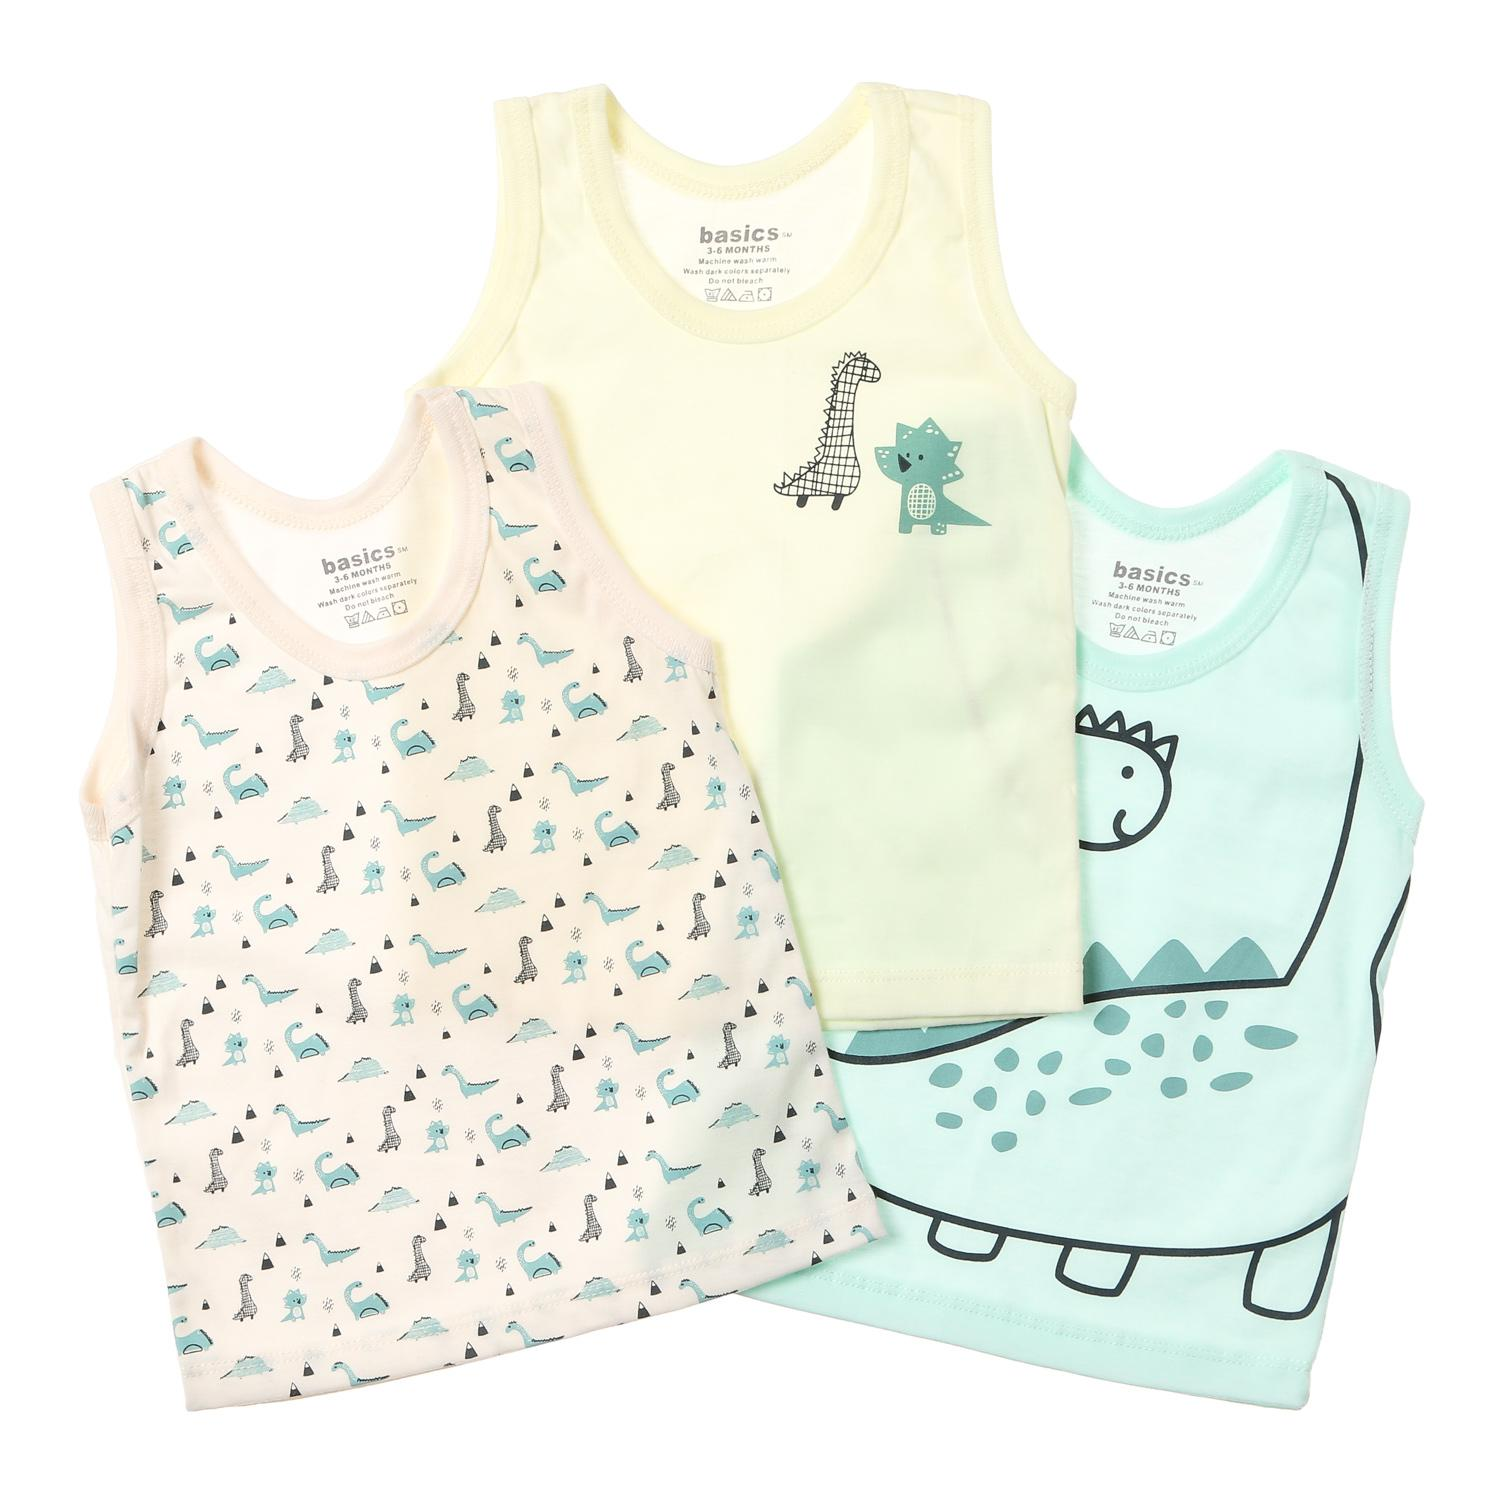 5f3a99d65802 Clothing. 68120 items found in Clothing. SM Basics Baby Boys 3-piece  Dinosaur Tank Set